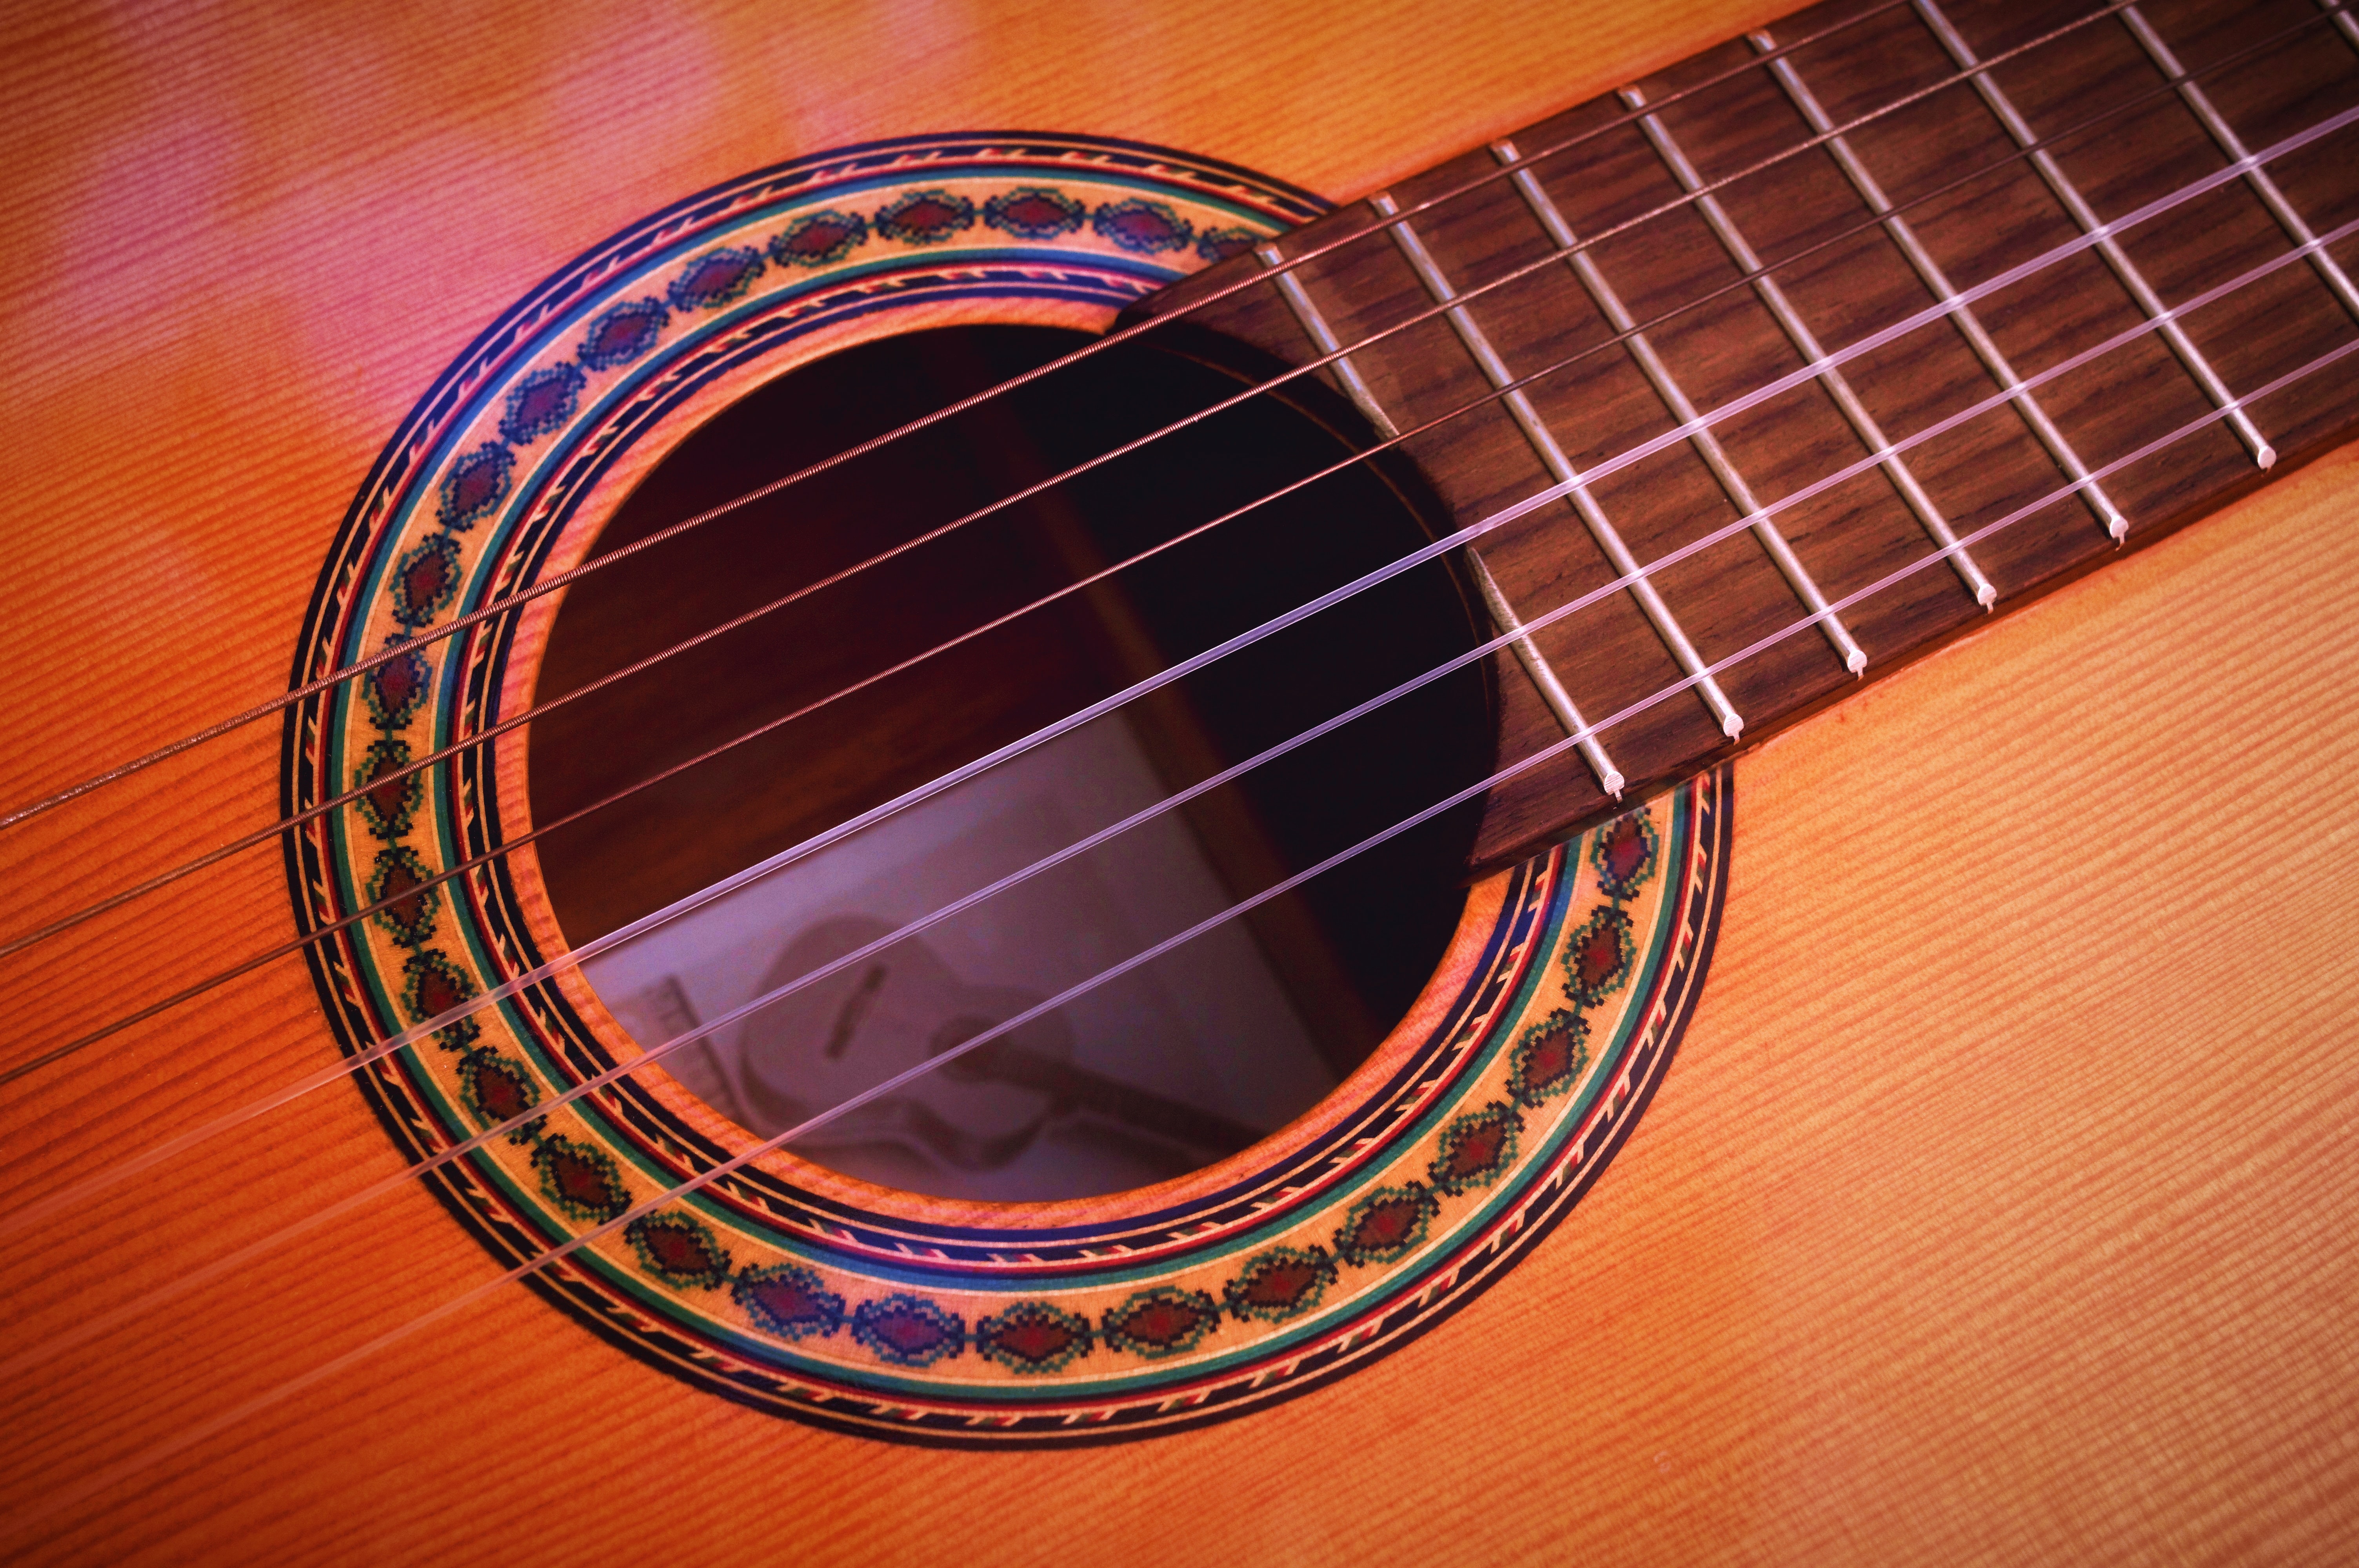 Macro of acoustic guitar's sound hole with ornate detail around it